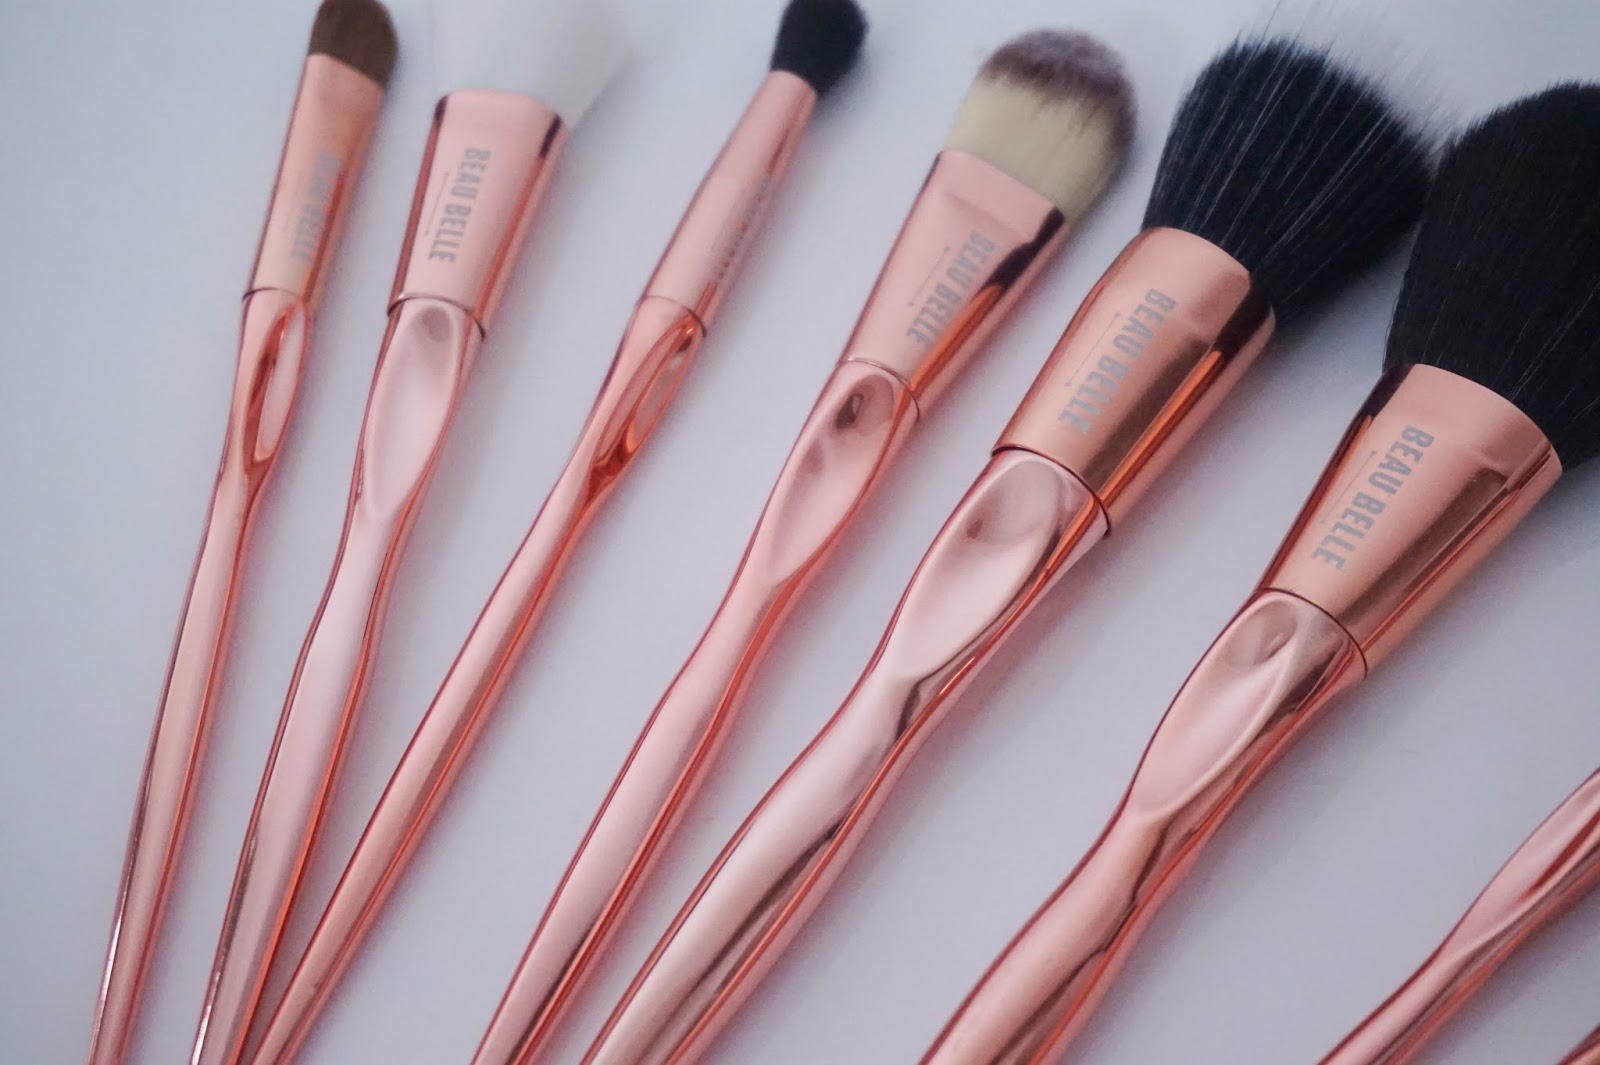 Rose Gold Brushes, close up